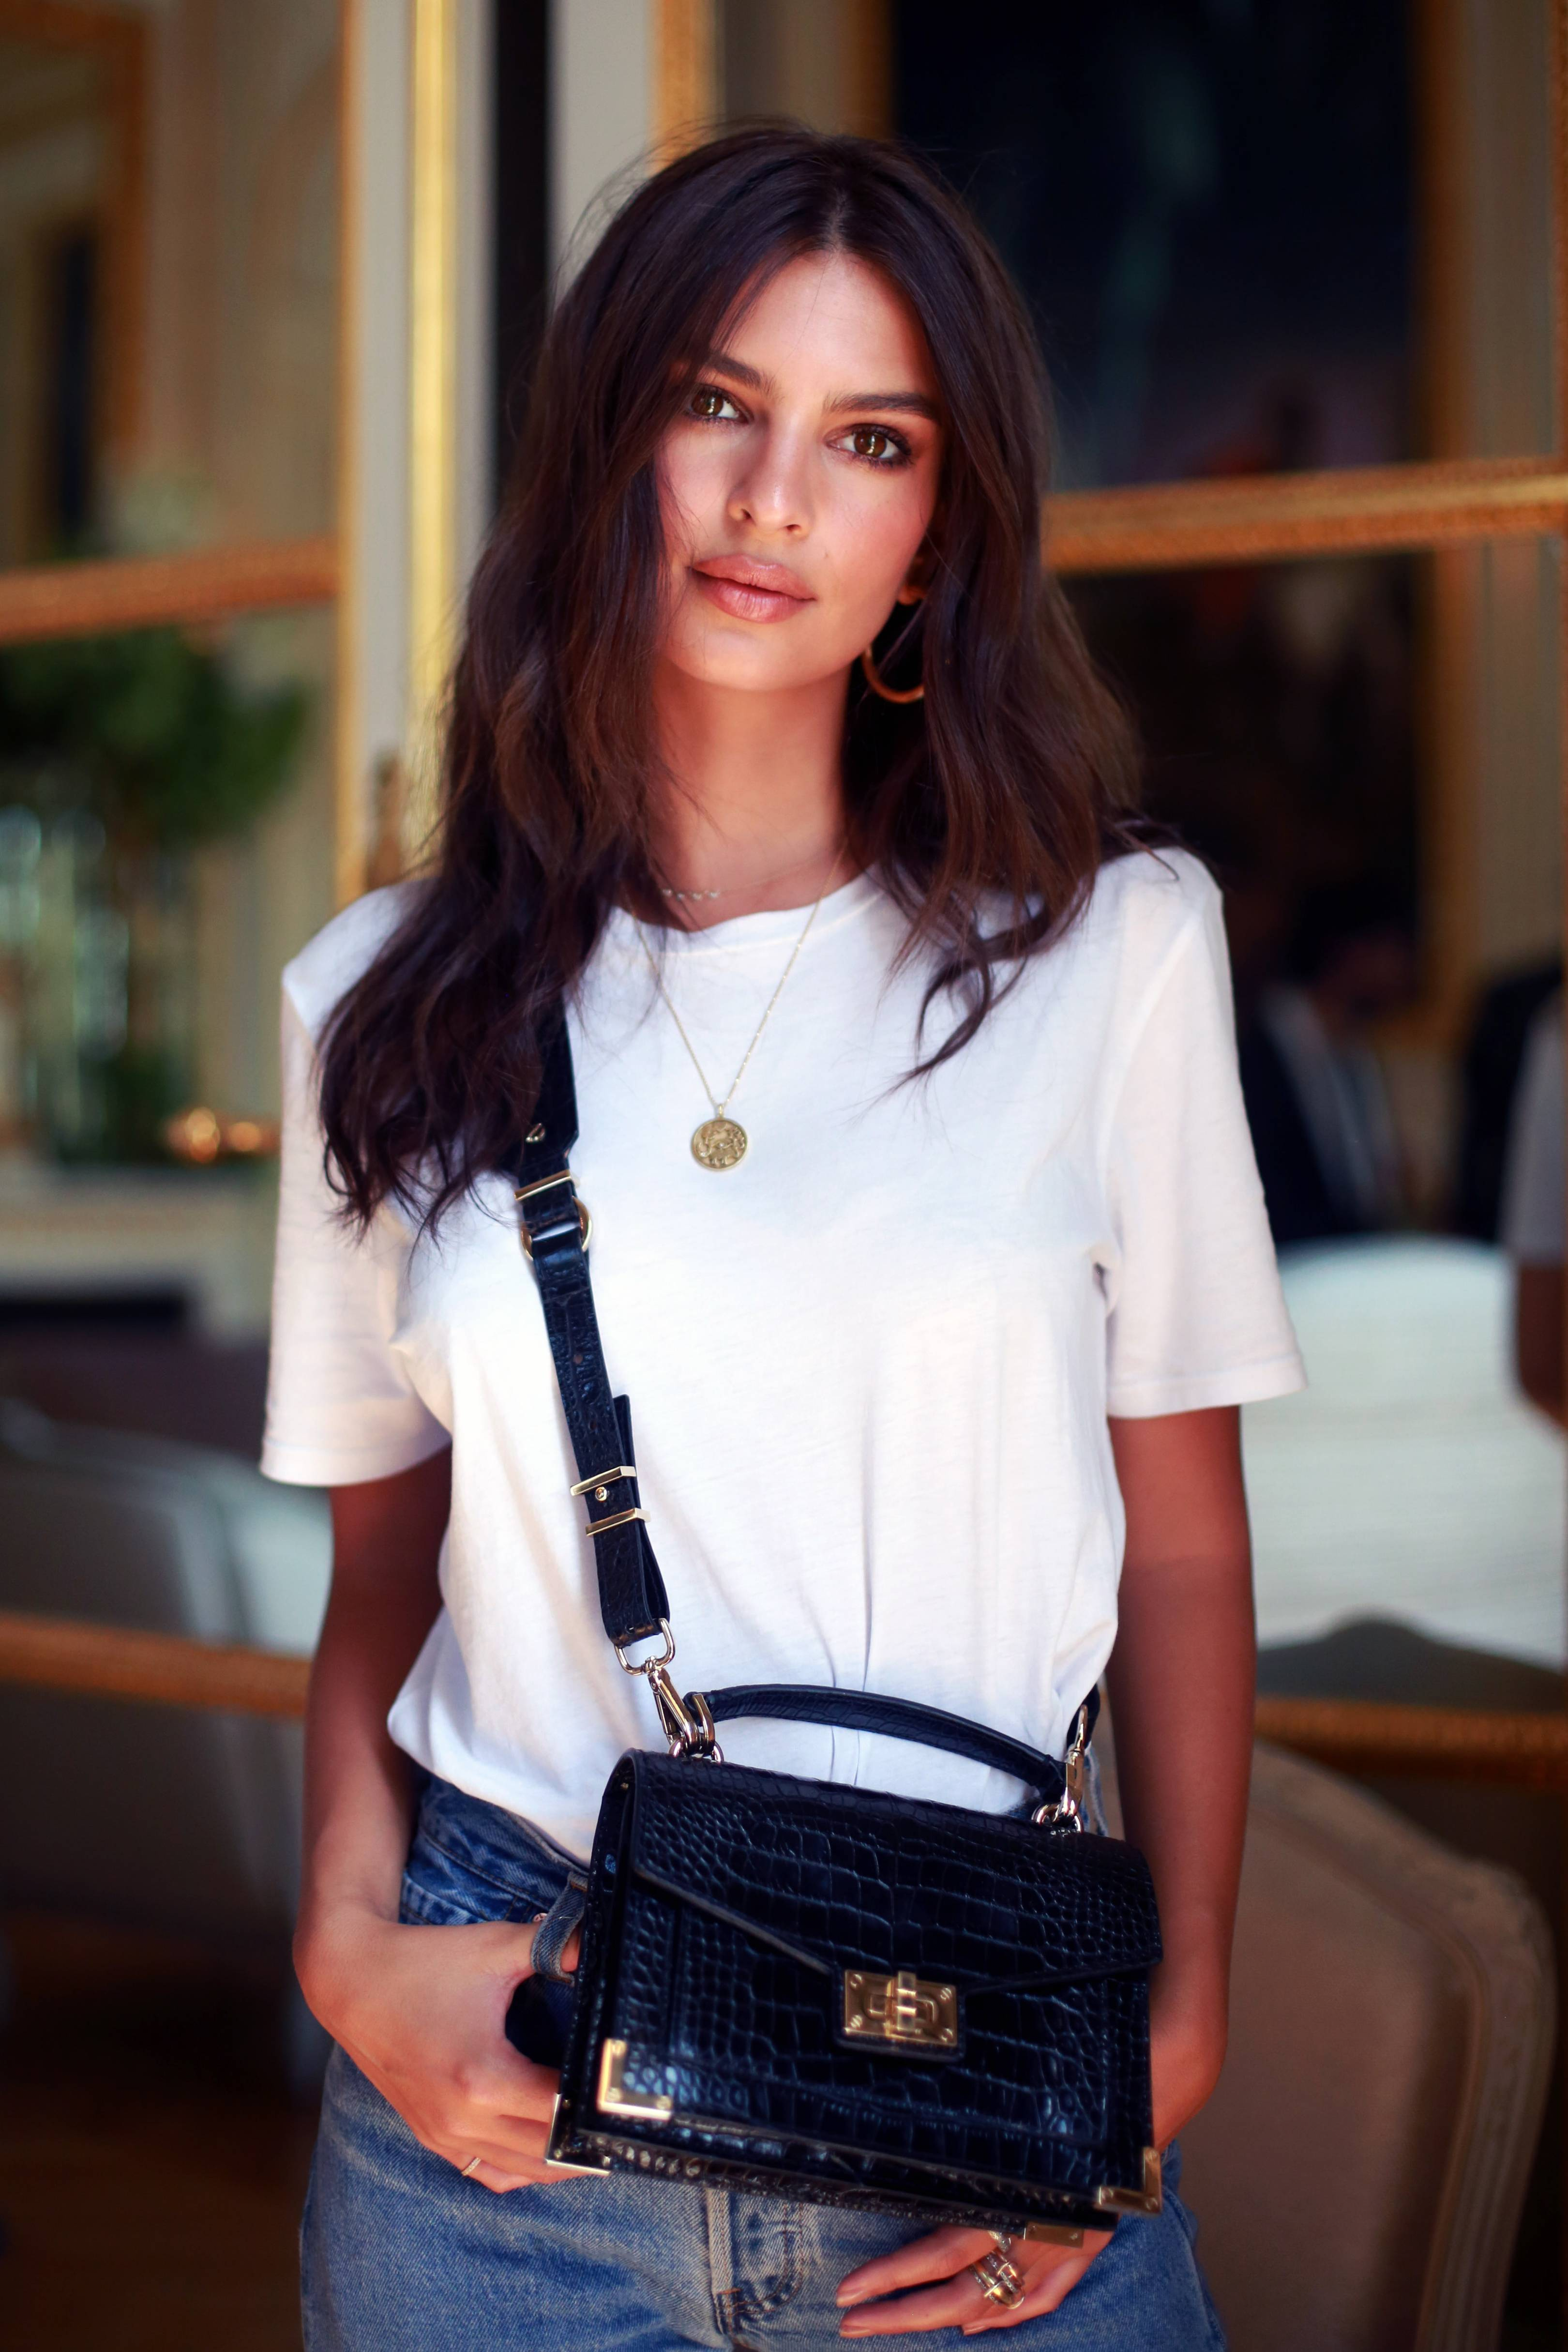 1e86ac161b Emily Ratajkowski On Feminism, The Questions She's Sick Of Answering, And  Her Collaboration With The Kooples | British Vogue